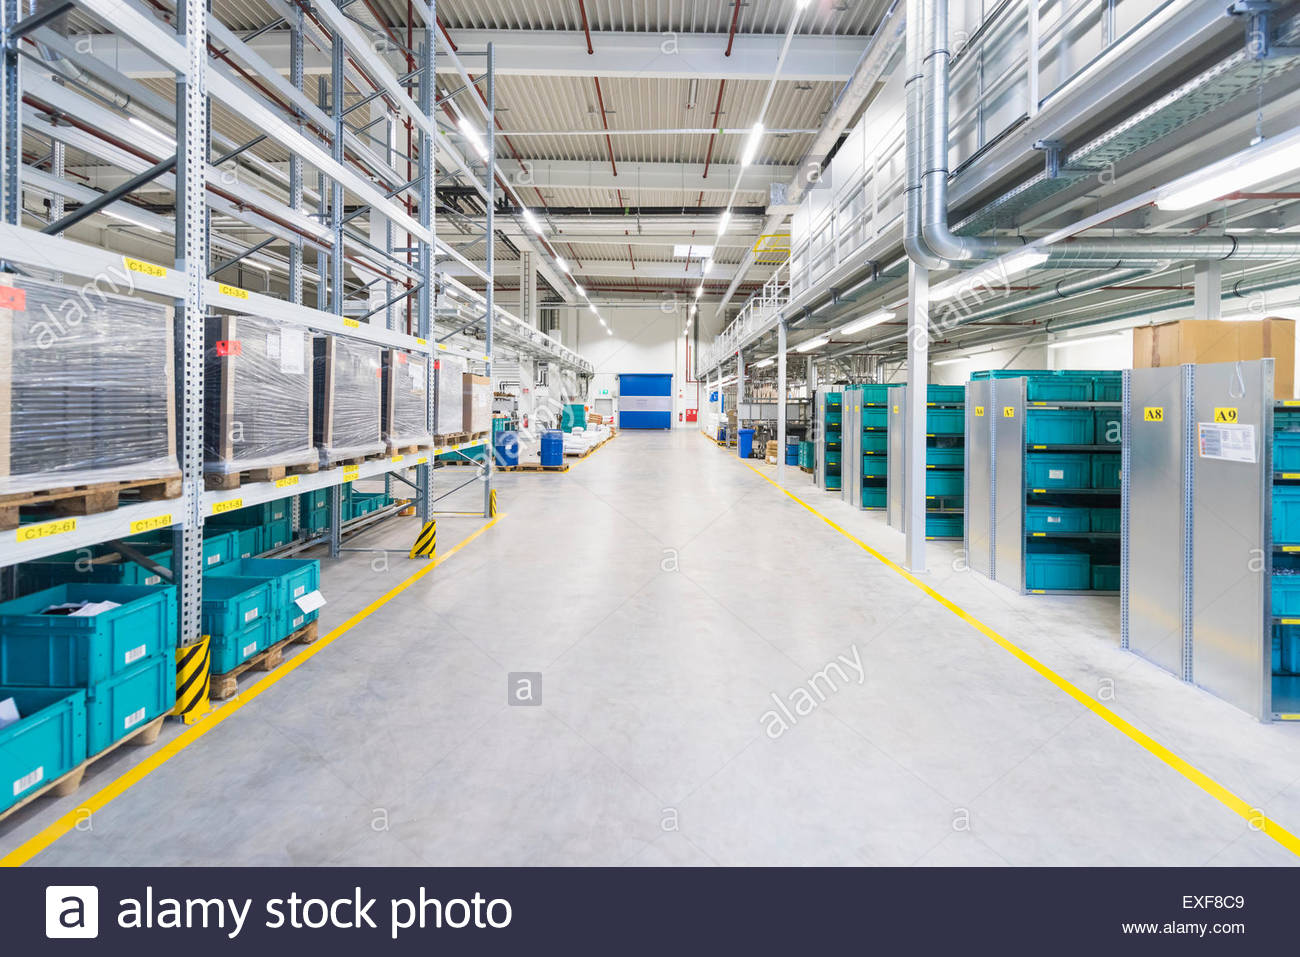 Aisle of industrial warehouse with storage shelving - Stock Image